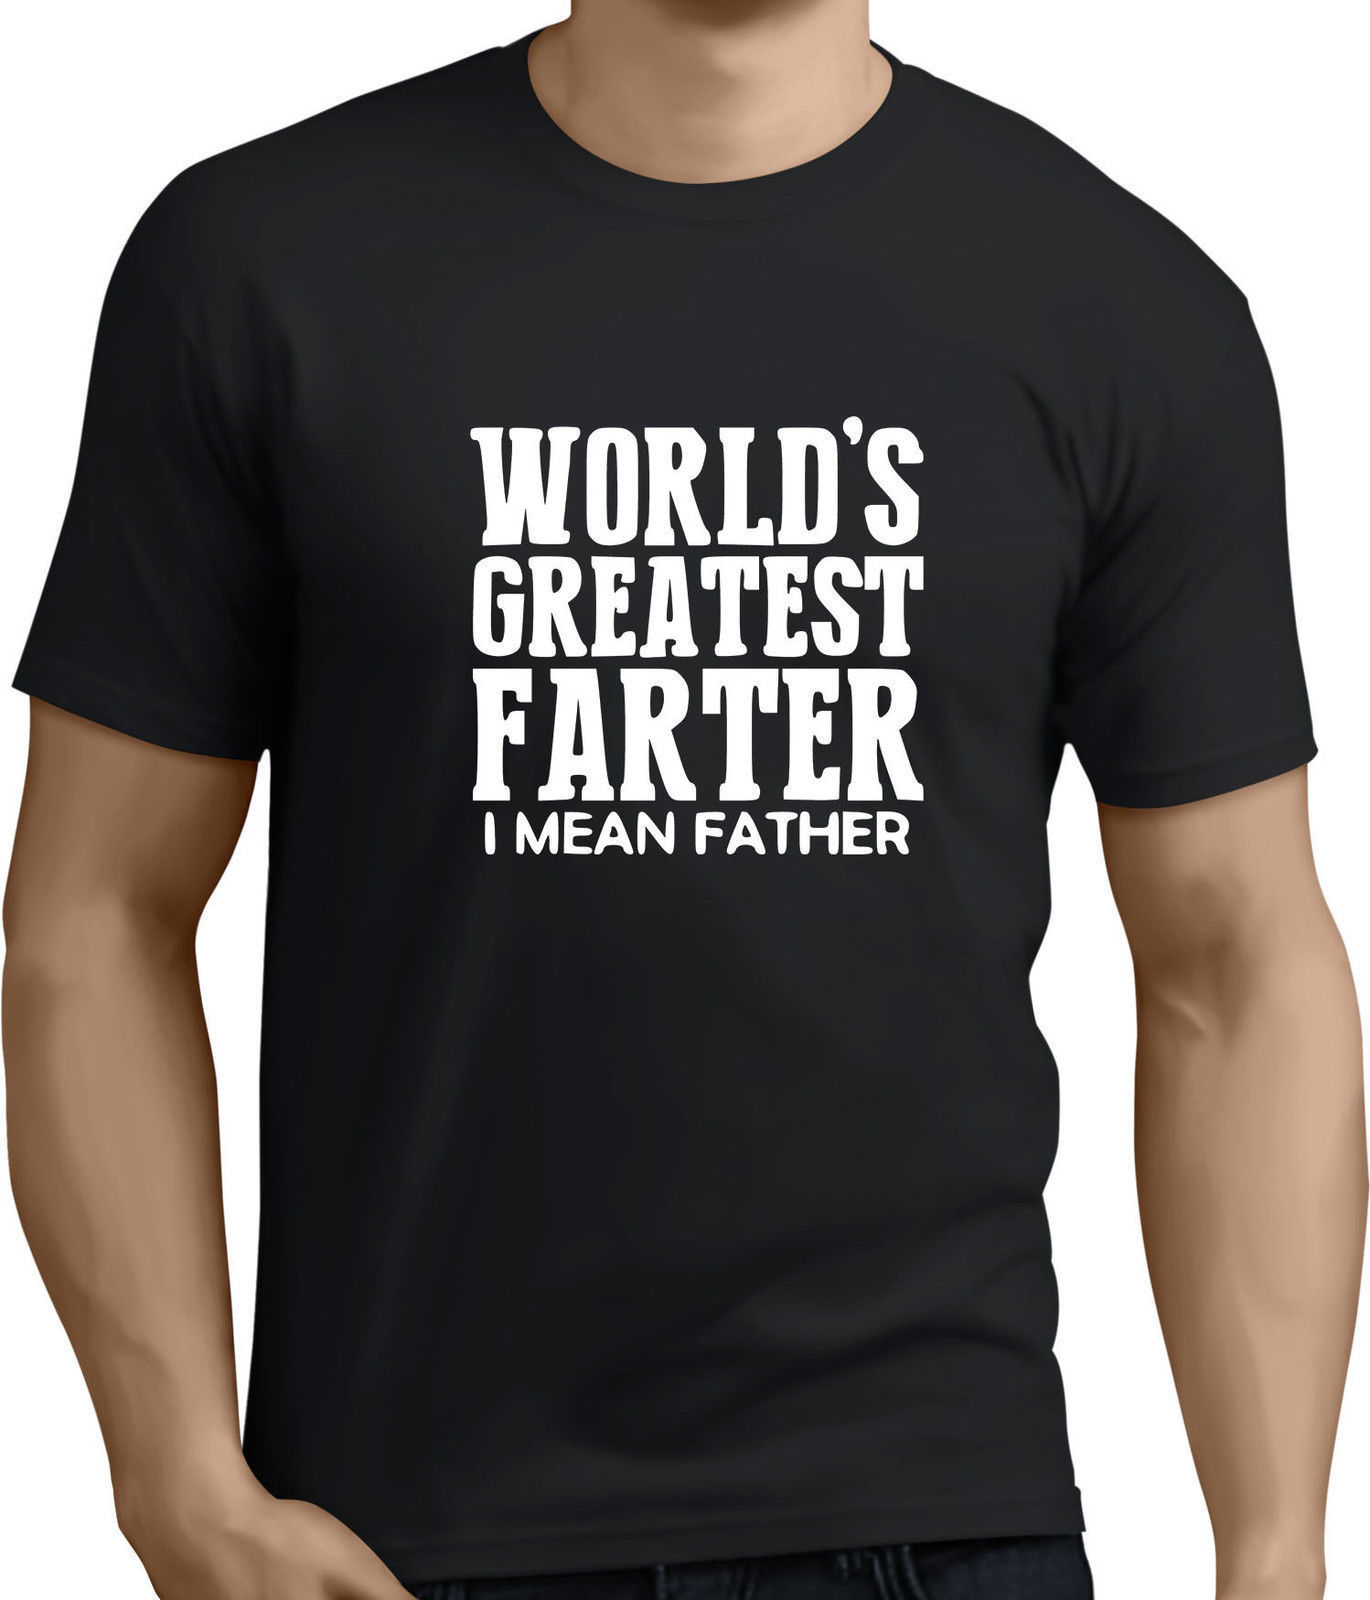 WORLD 39 S GREATEST FARTER Funny Printed Mens Womens T Shirts Gift t shirt RT538 New T Shirts Funny Tops Tee New Unisex Funny Tops in T Shirts from Men 39 s Clothing